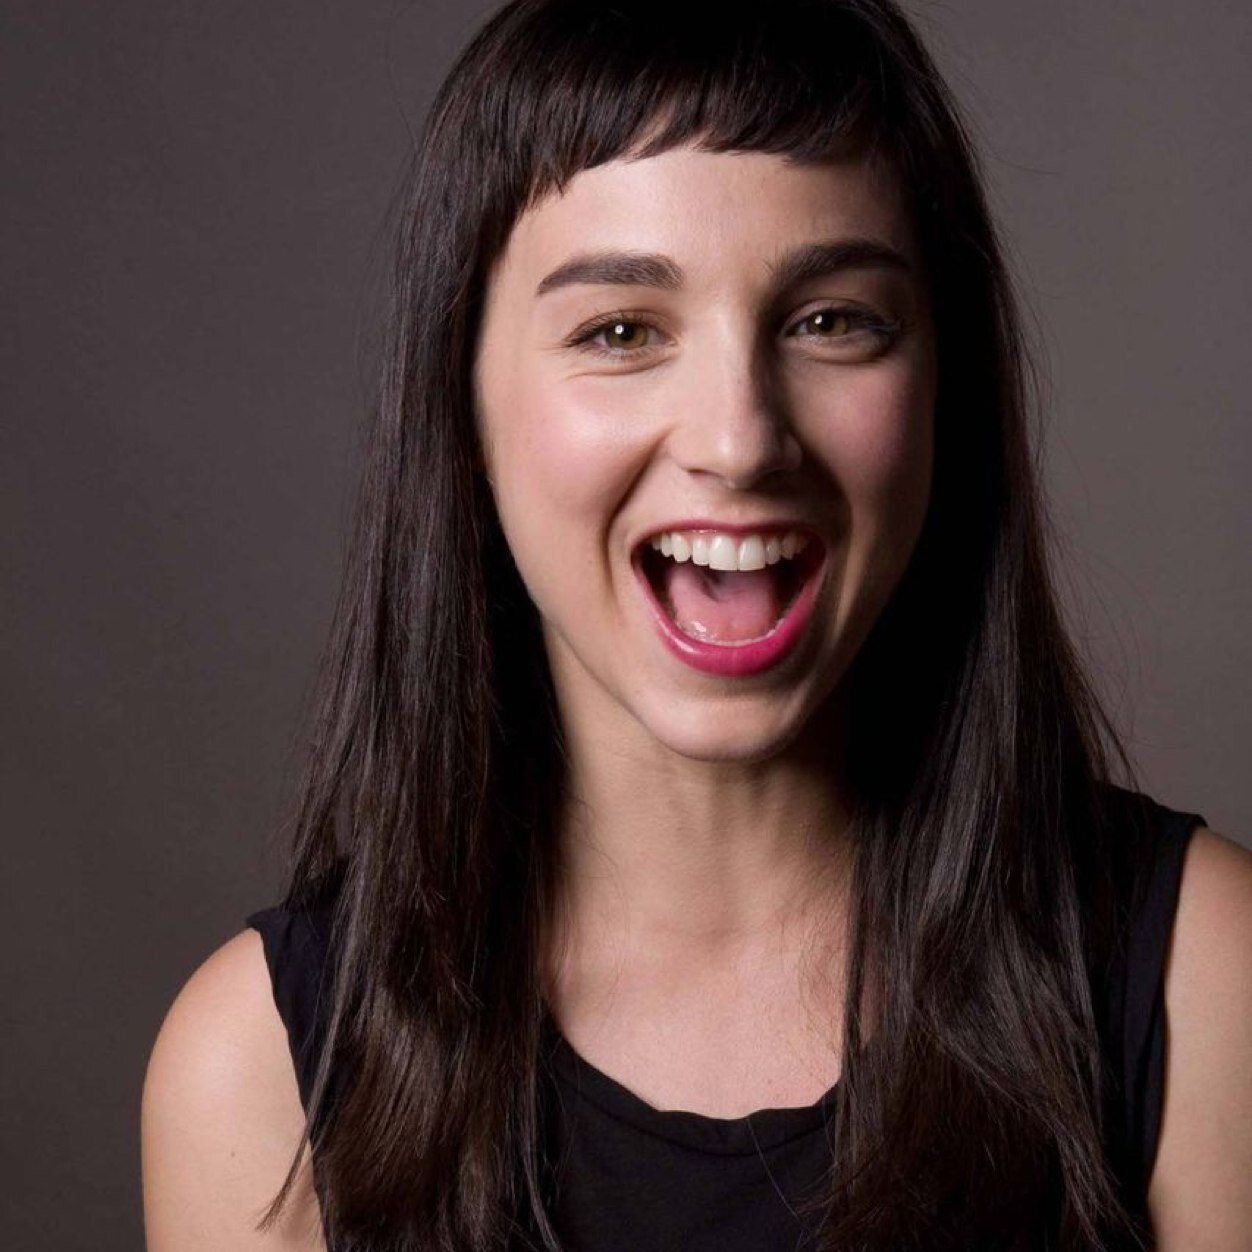 molly ephraim net worthmolly ephraim 2016, molly ephraim hairstyles, molly ephraim heigh, molly ephraim instagram, molly ephraim no makeup, molly ephraim, molly ephraim husband, molly ephraim boyfriend, molly ephraim twitter, molly ephraim net worth, molly ephraim measurements, molly ephraim bio